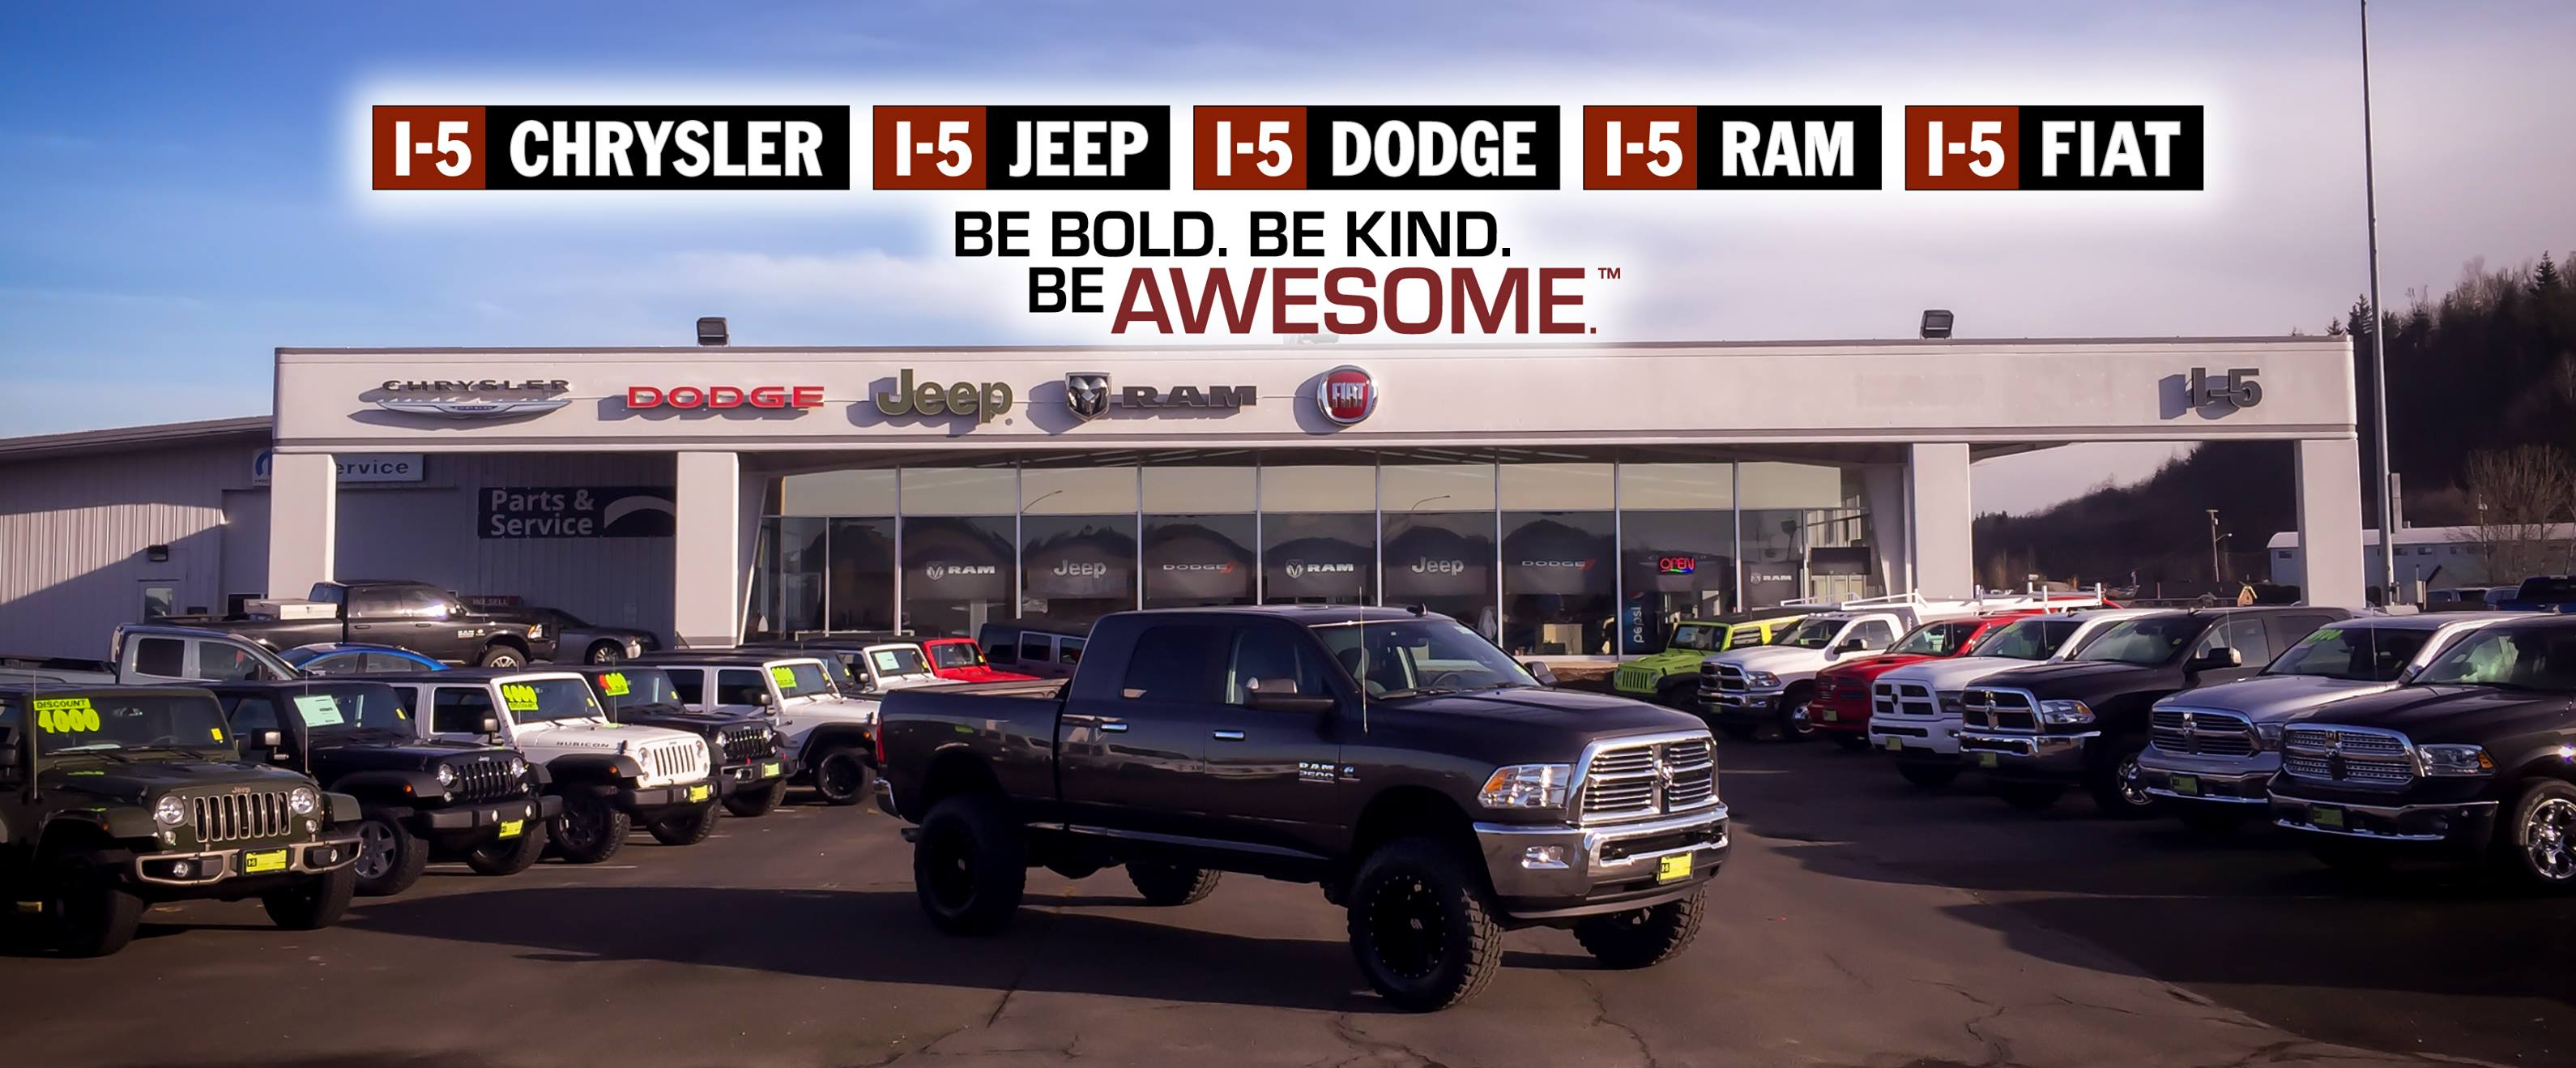 dodge mcgrath rinderknecht country dealership dodgecountry auto associates